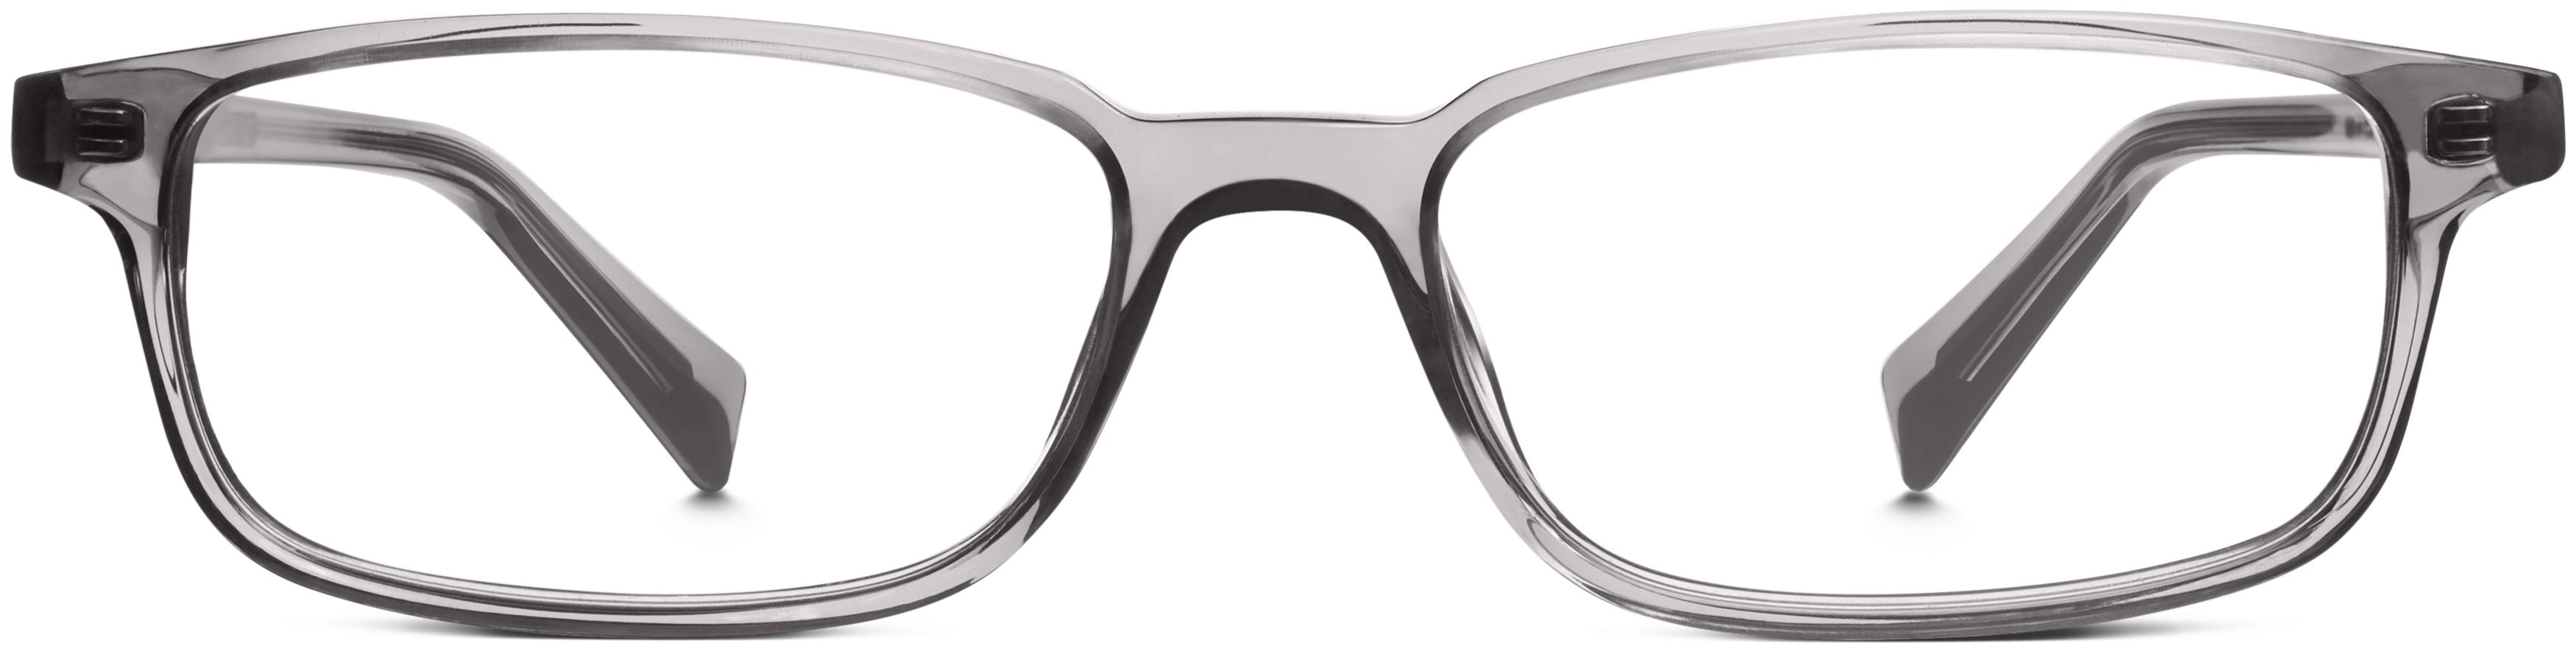 77d8a18ae0cd Women s Eyeglasses